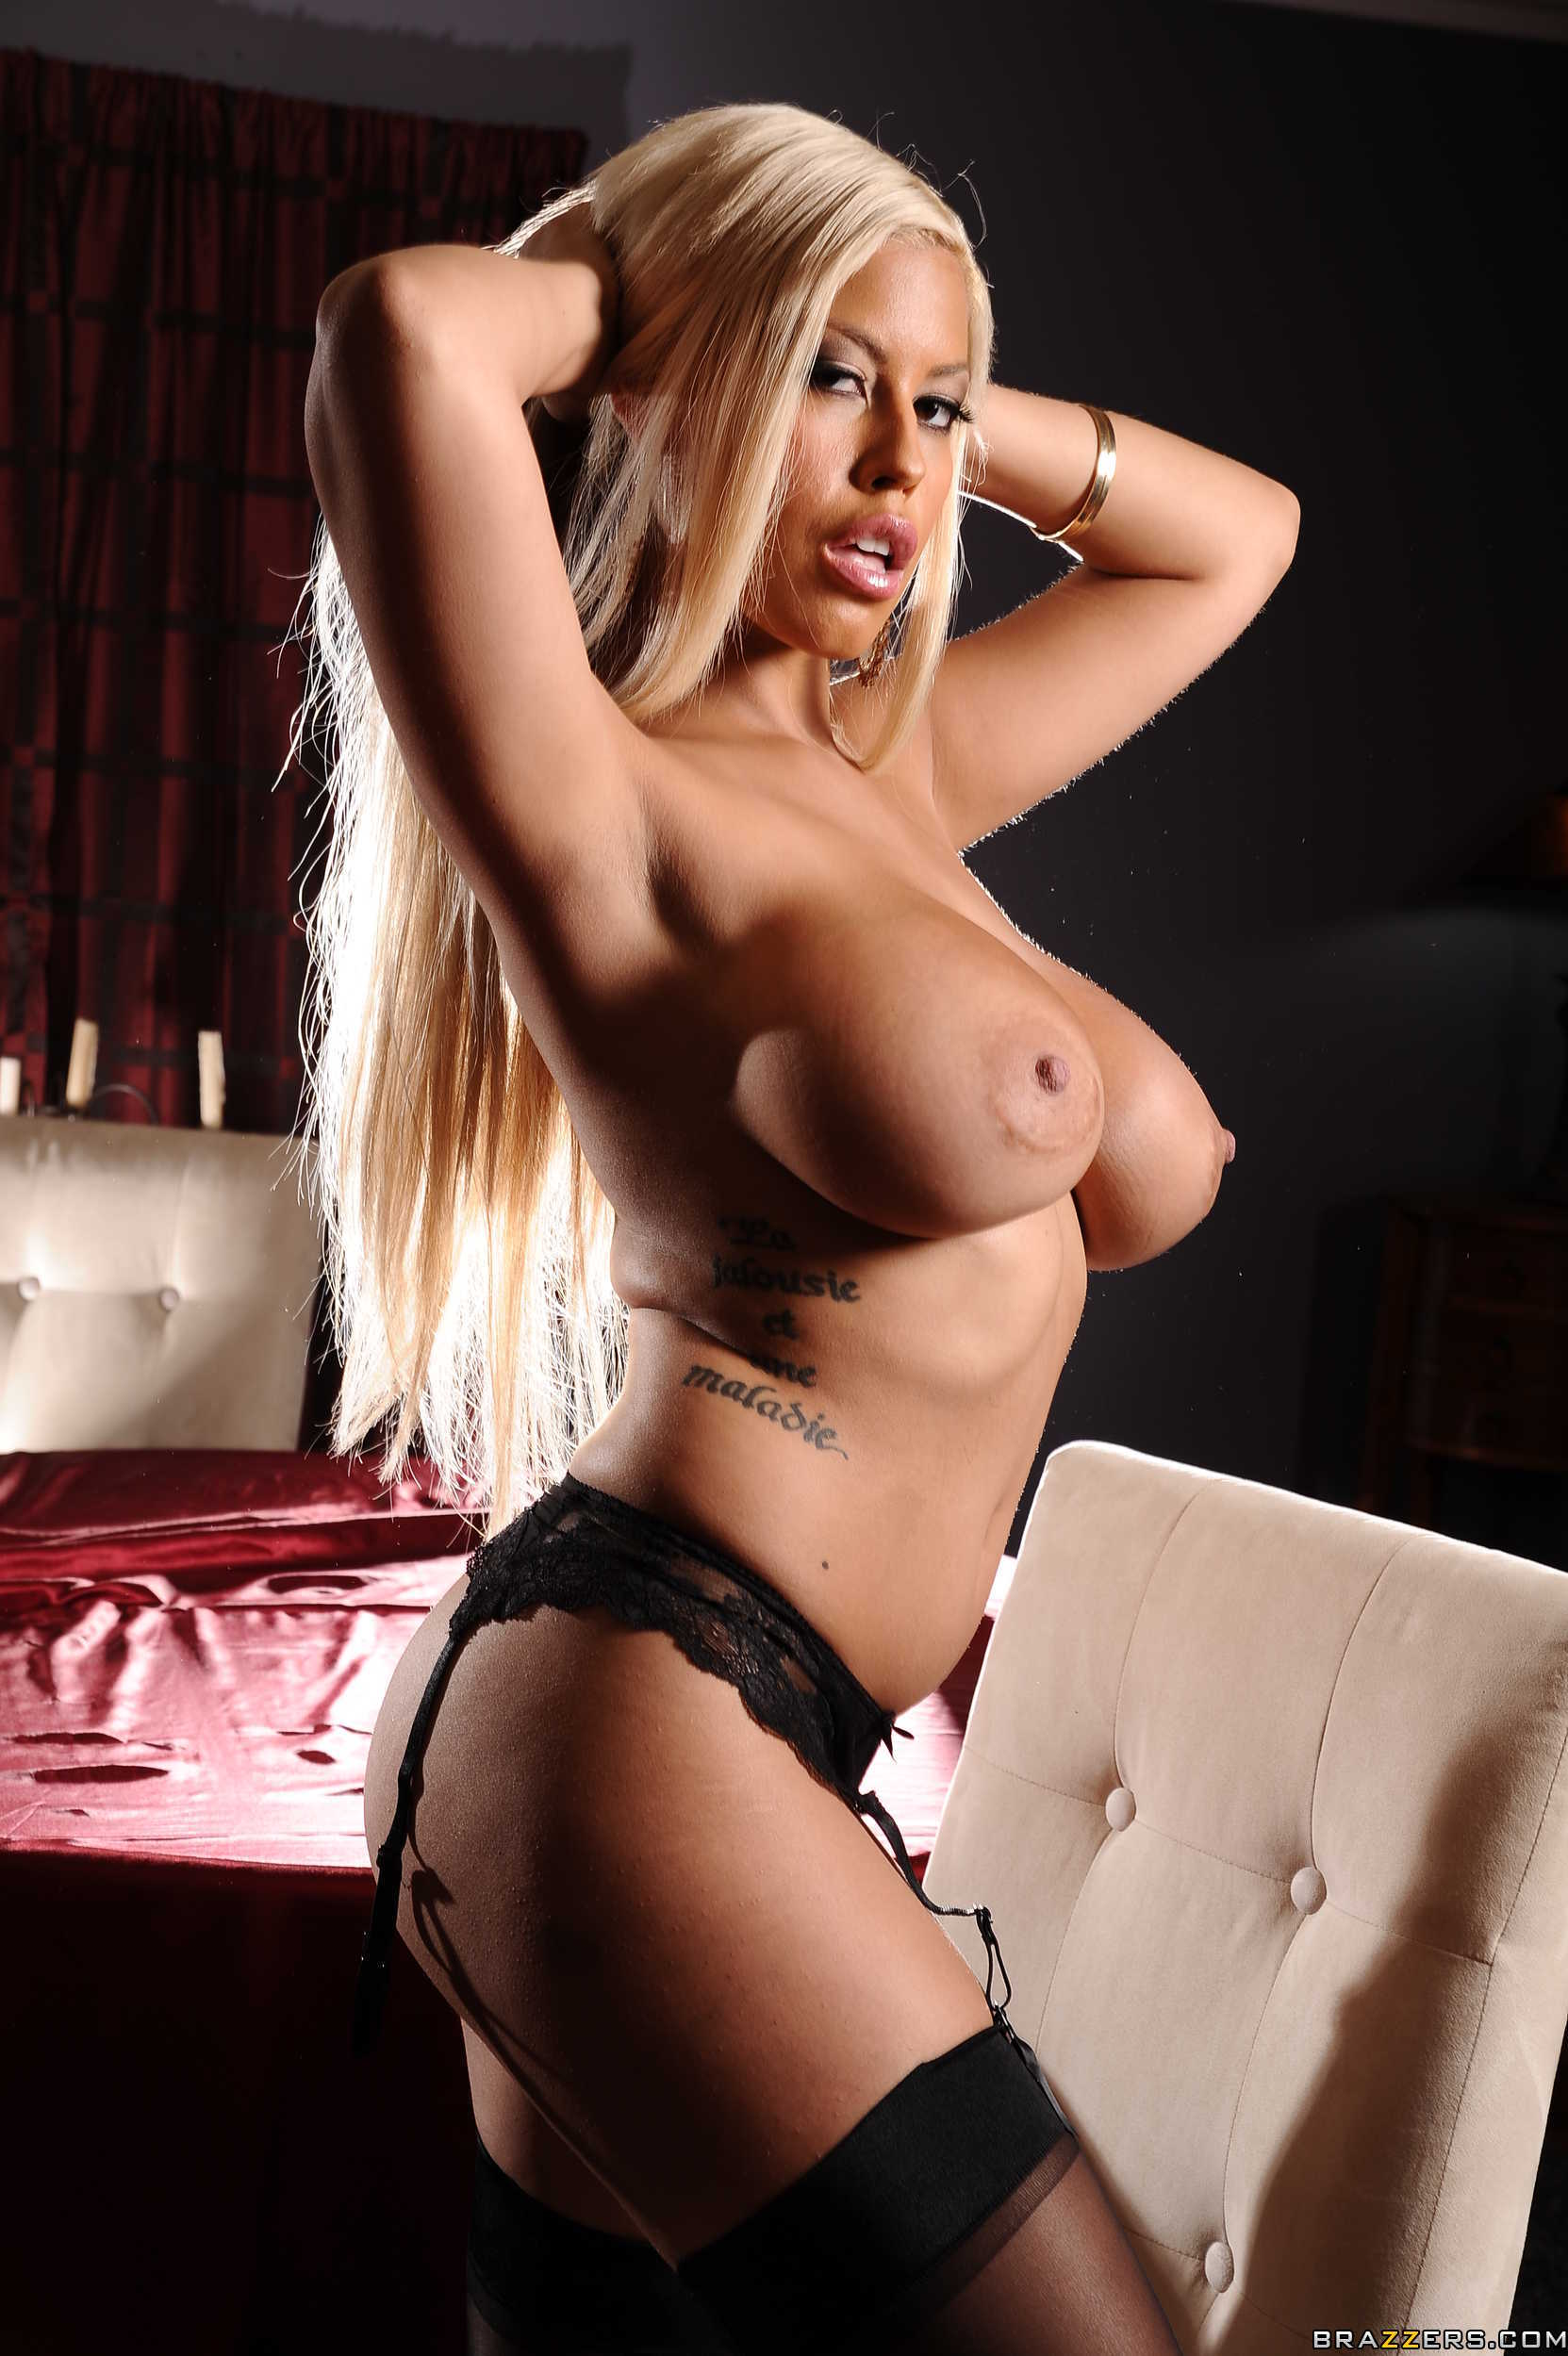 image Bridgette b amazing blonde with huge tits